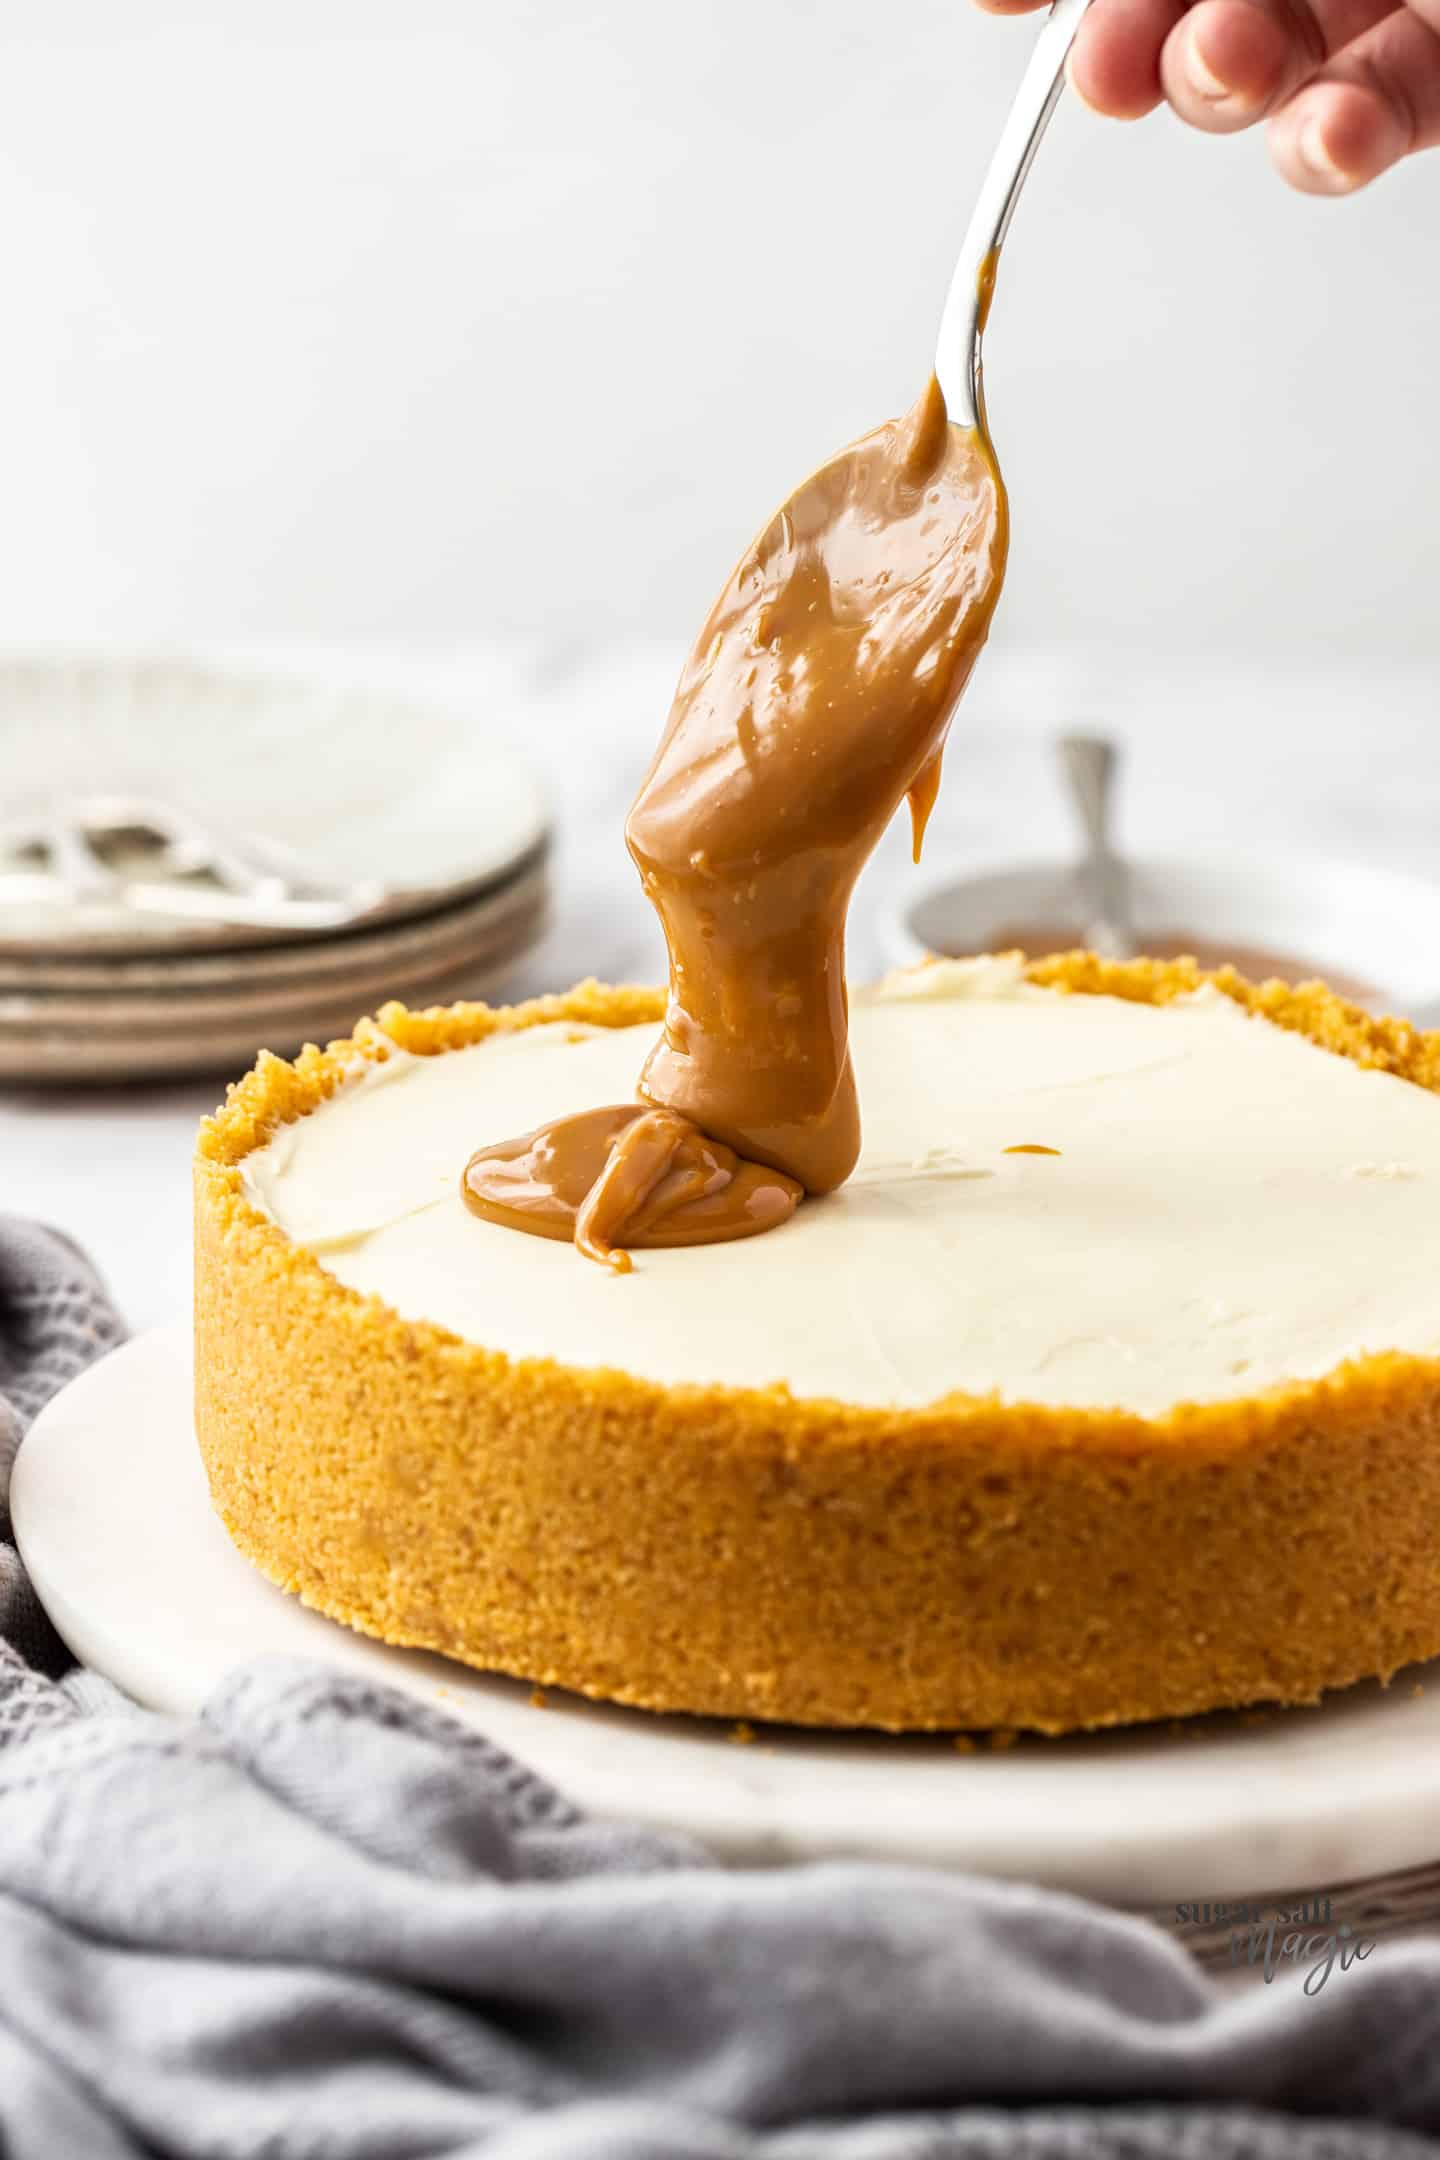 A big spoonful of dulce de leche being dropped onto the top of a cheesecake.